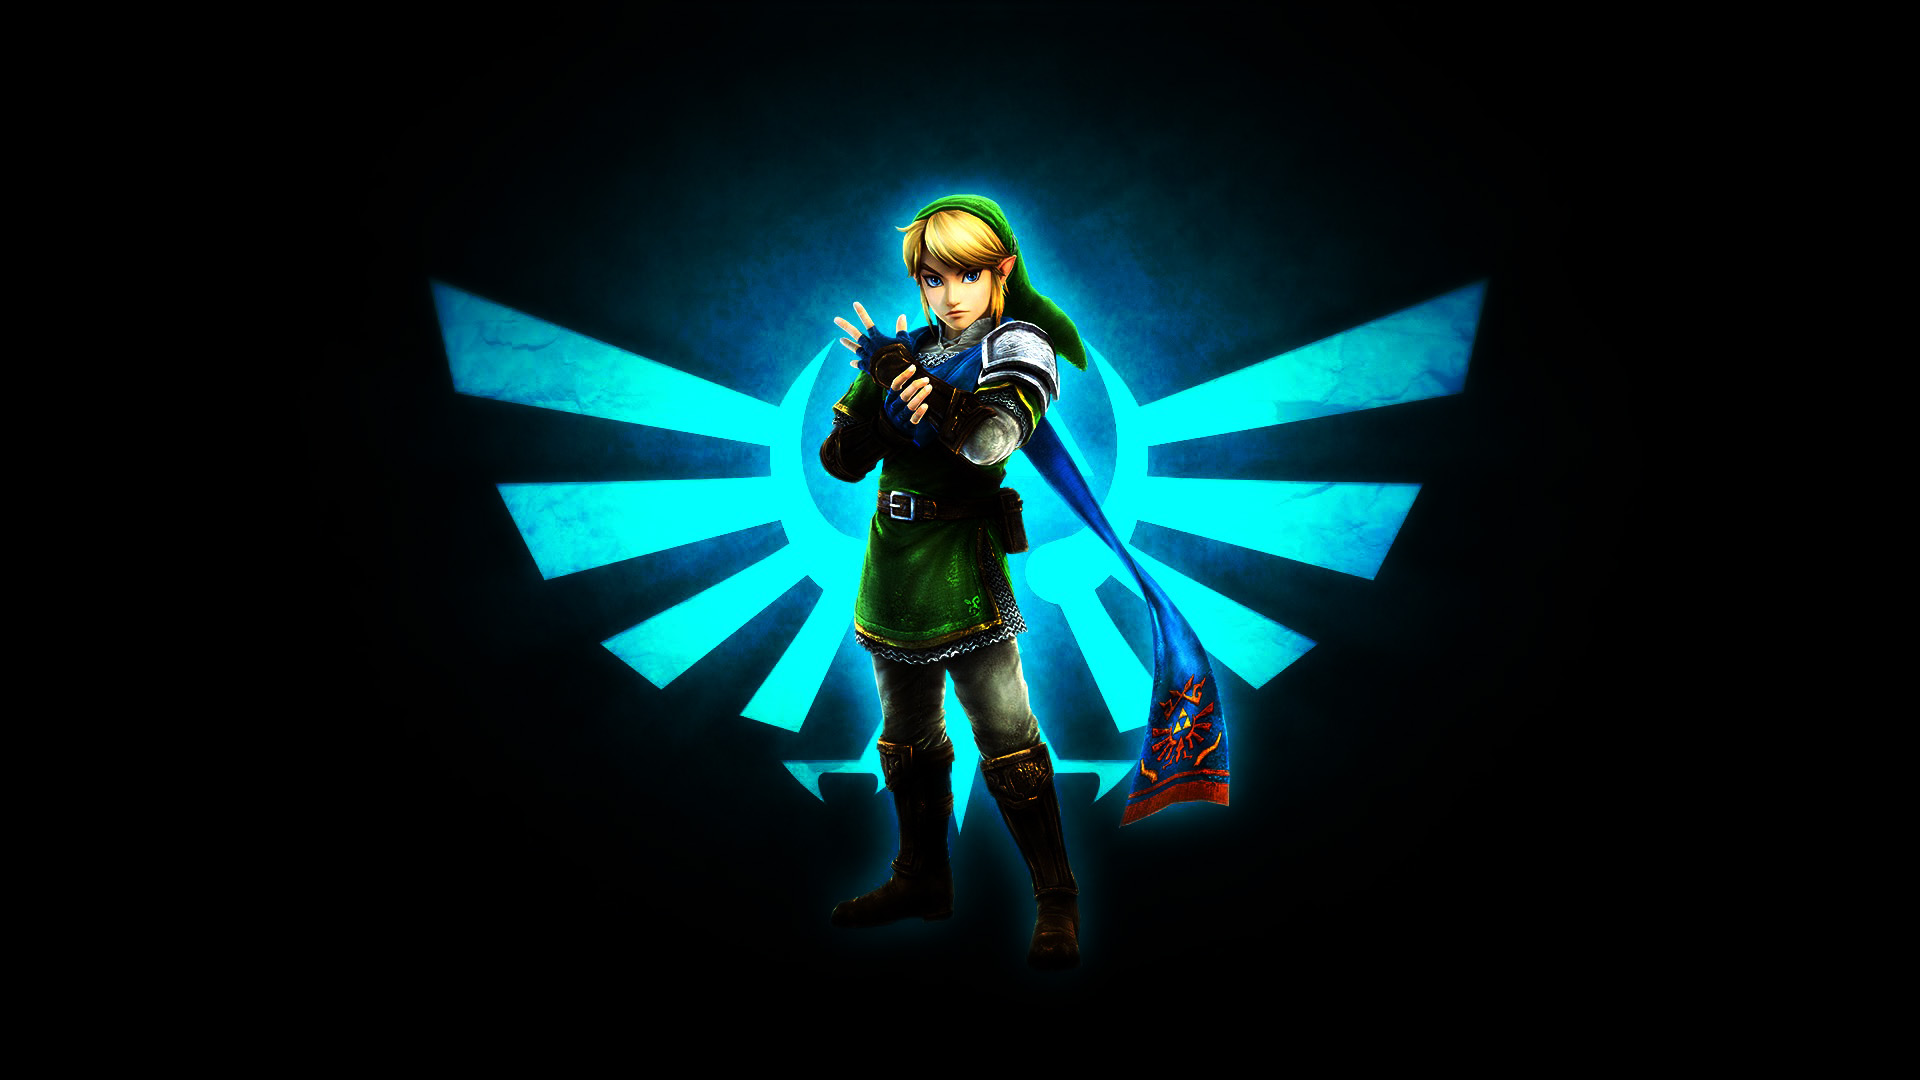 Link 100 HD Backgrounds buckshee only here at 1920x1080